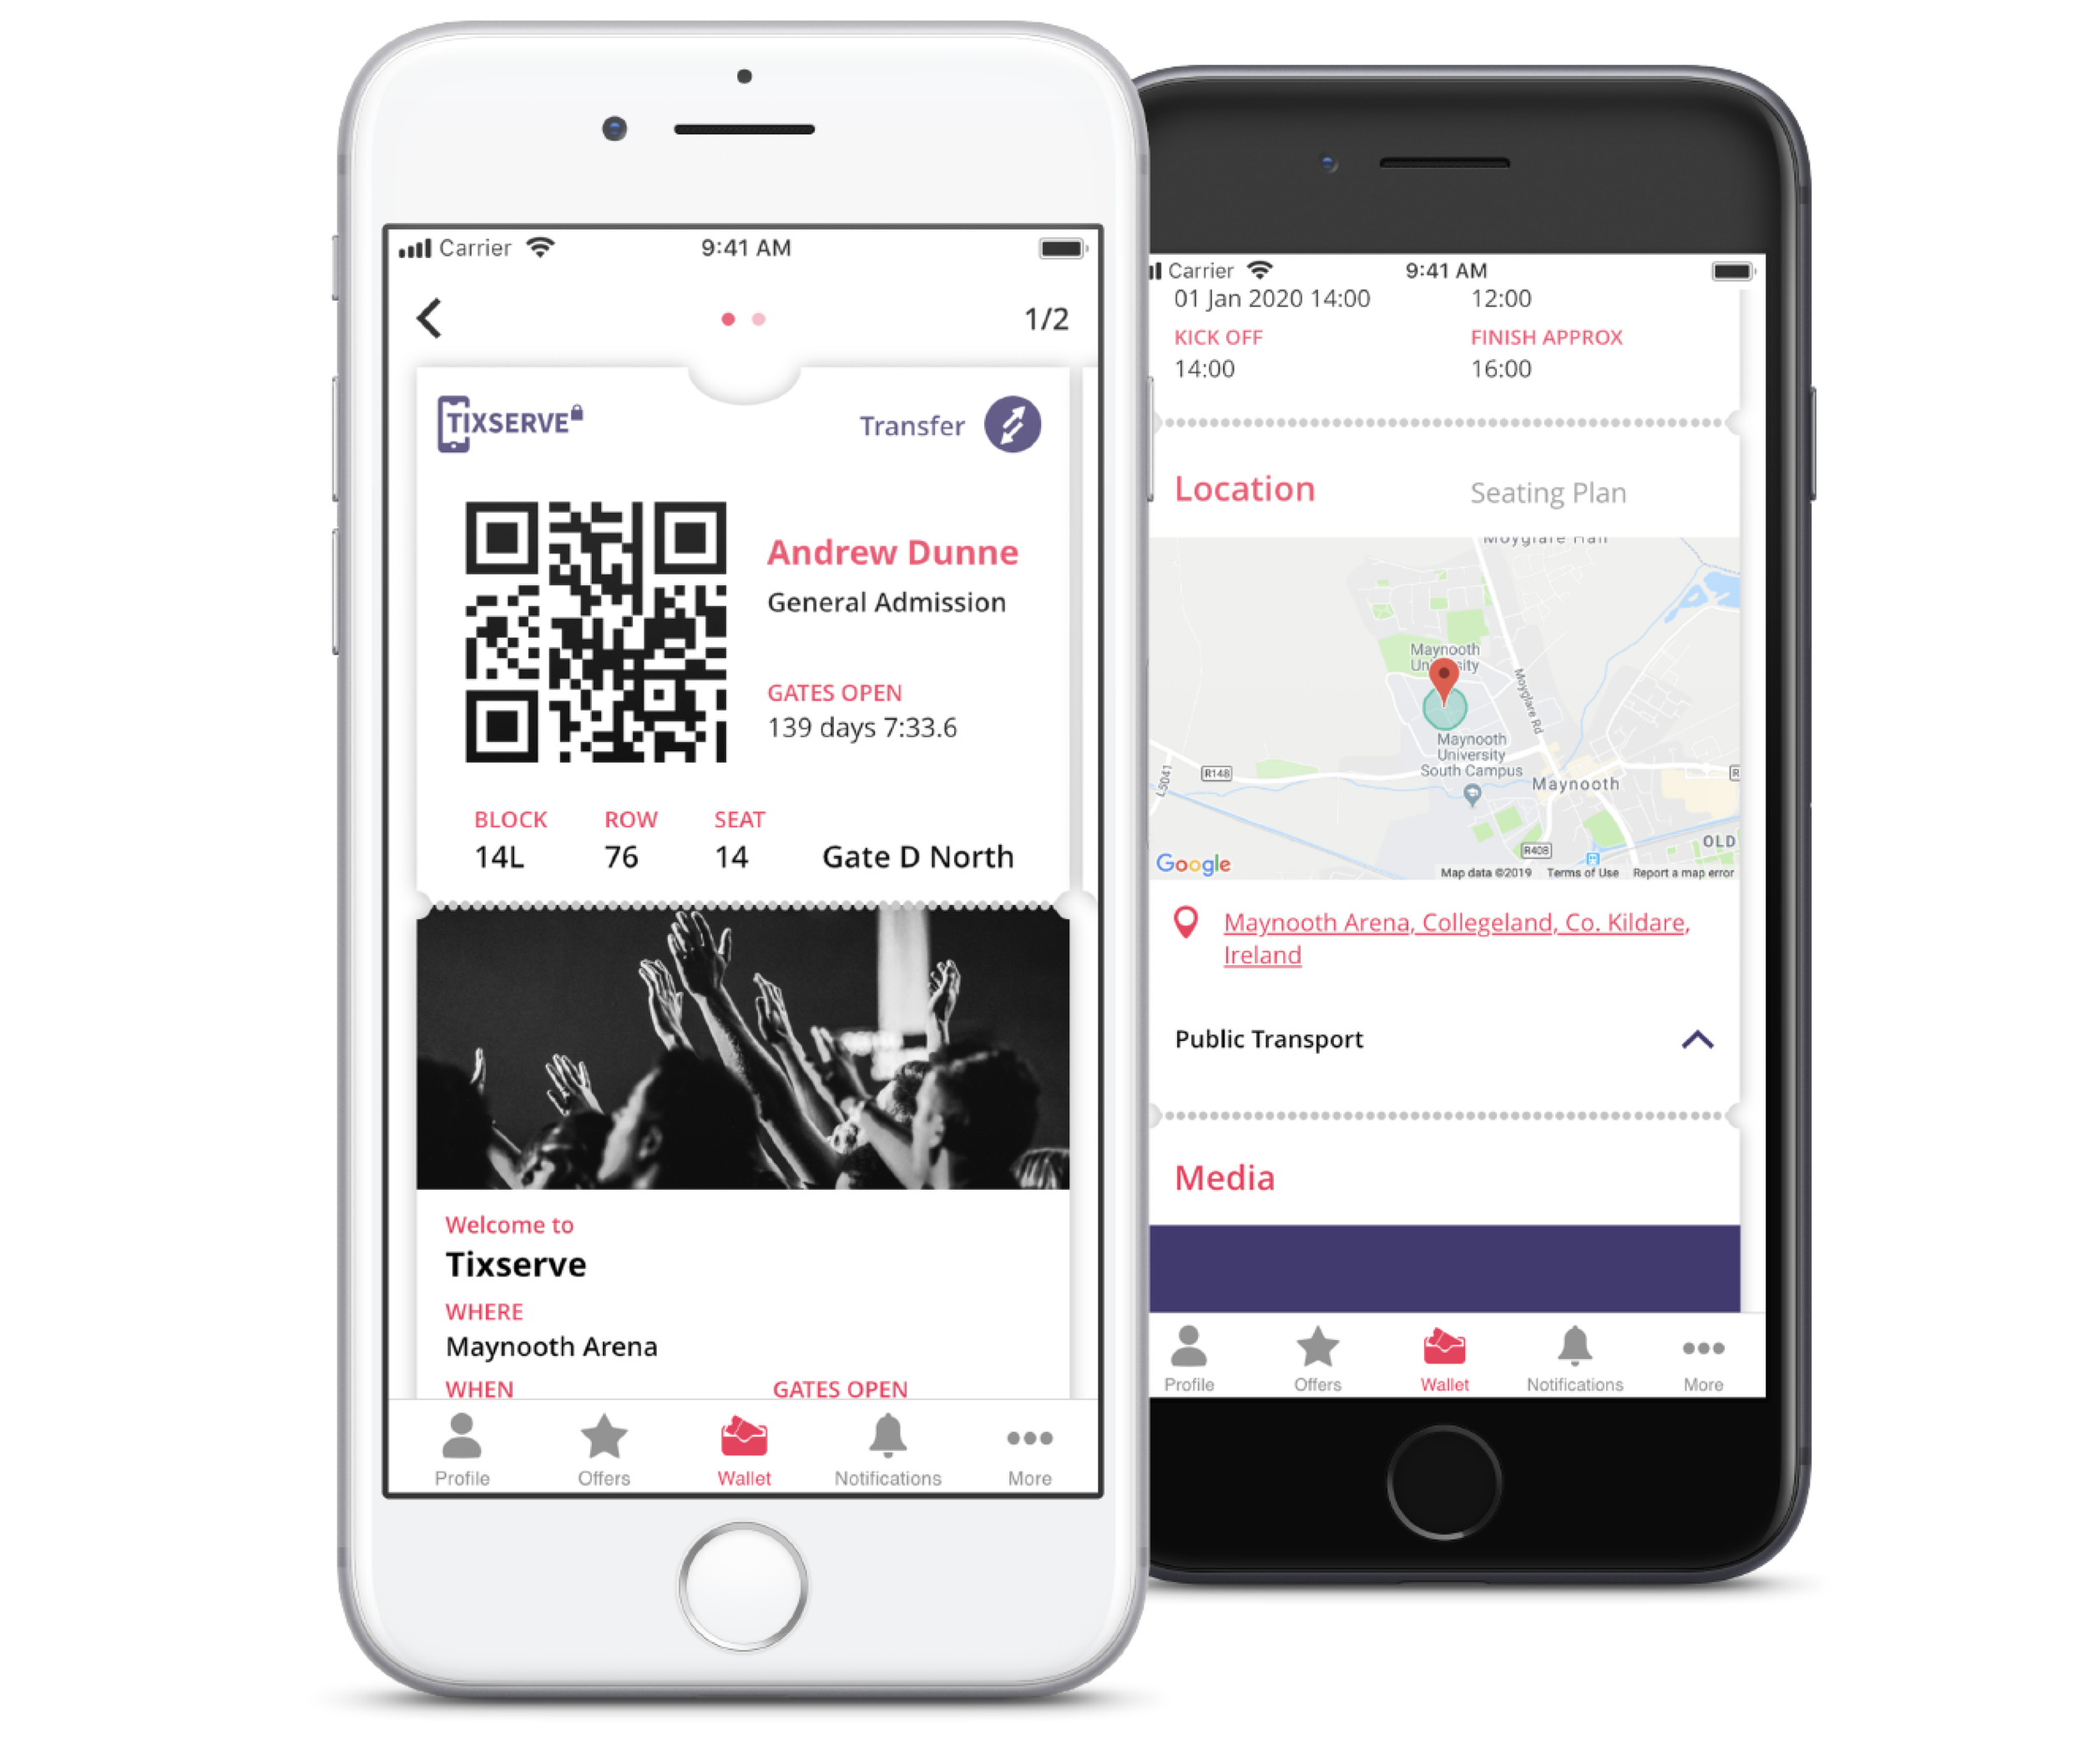 tickets are delivered into a tixserve powered app - Fans benefit from a reliable and safe digital ticketing experience.Build a relationship with fans though event content and push notifications.The app is white label meaning we put our clients brand upfront.The Tixserve generic app can also be used for a trial purpose via batch upload.